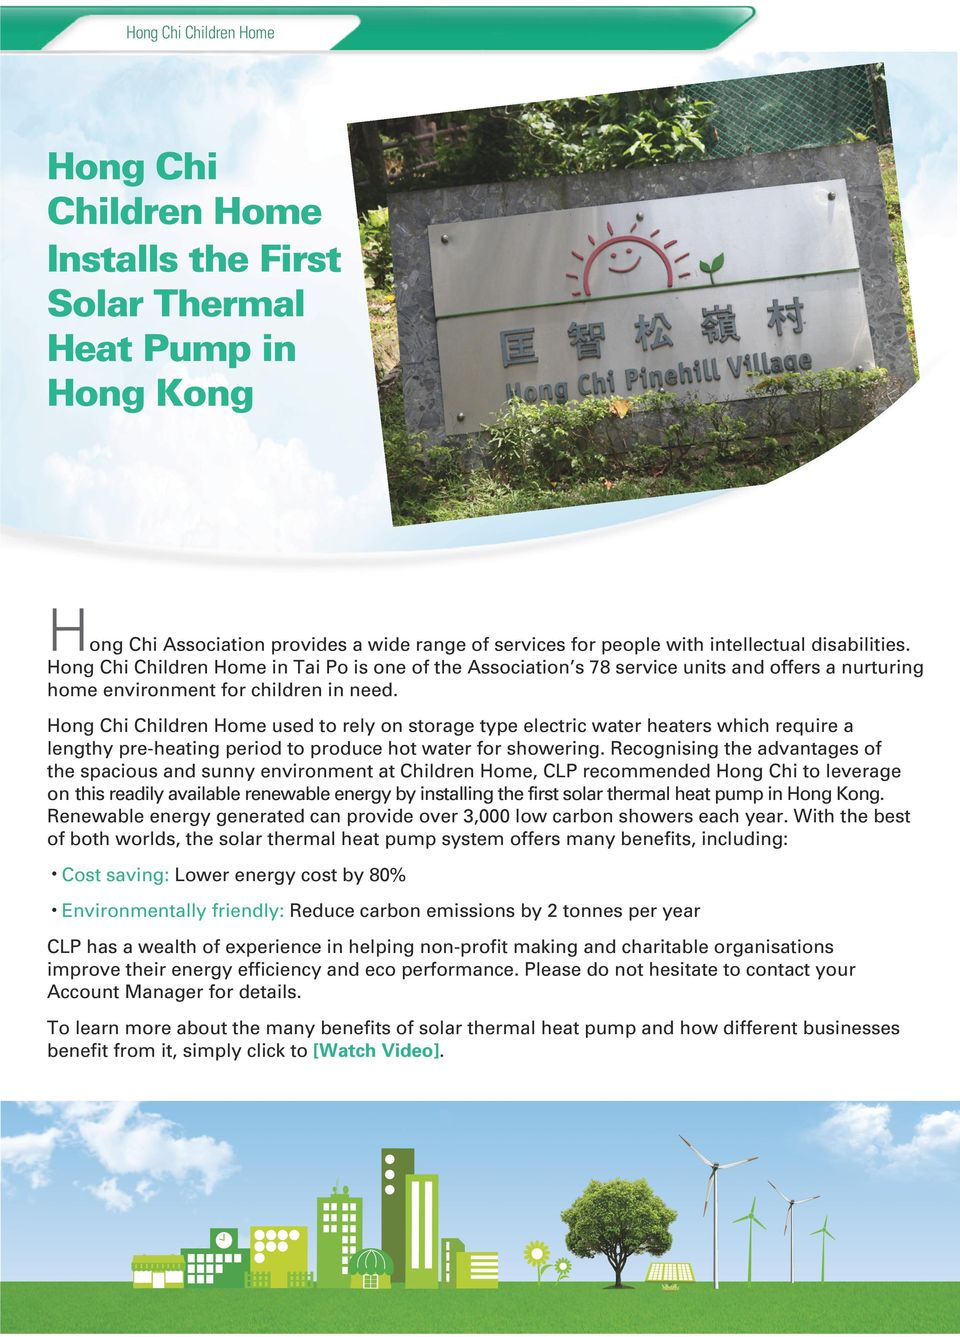 Hong Chi Children Home used to rely on storage type electric water heaters which require a lengthy pre-heating period to produce hot water for showering.